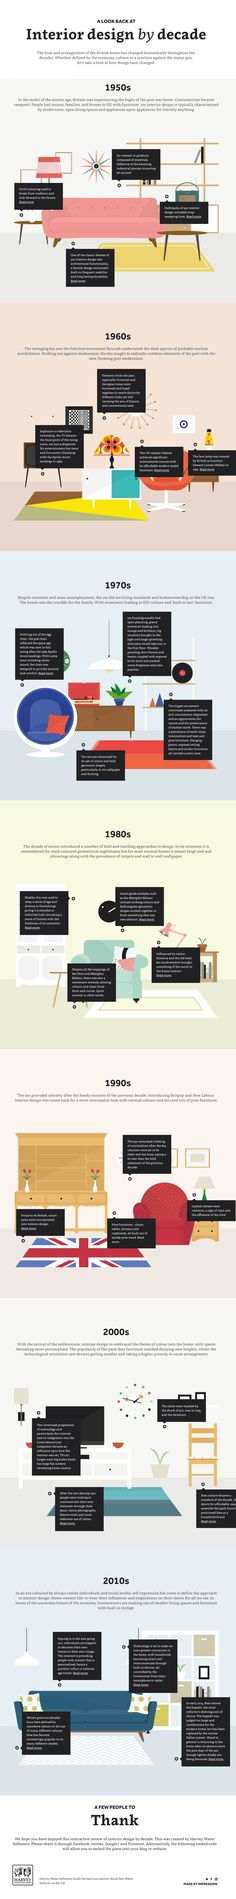 interior design by decade infographic